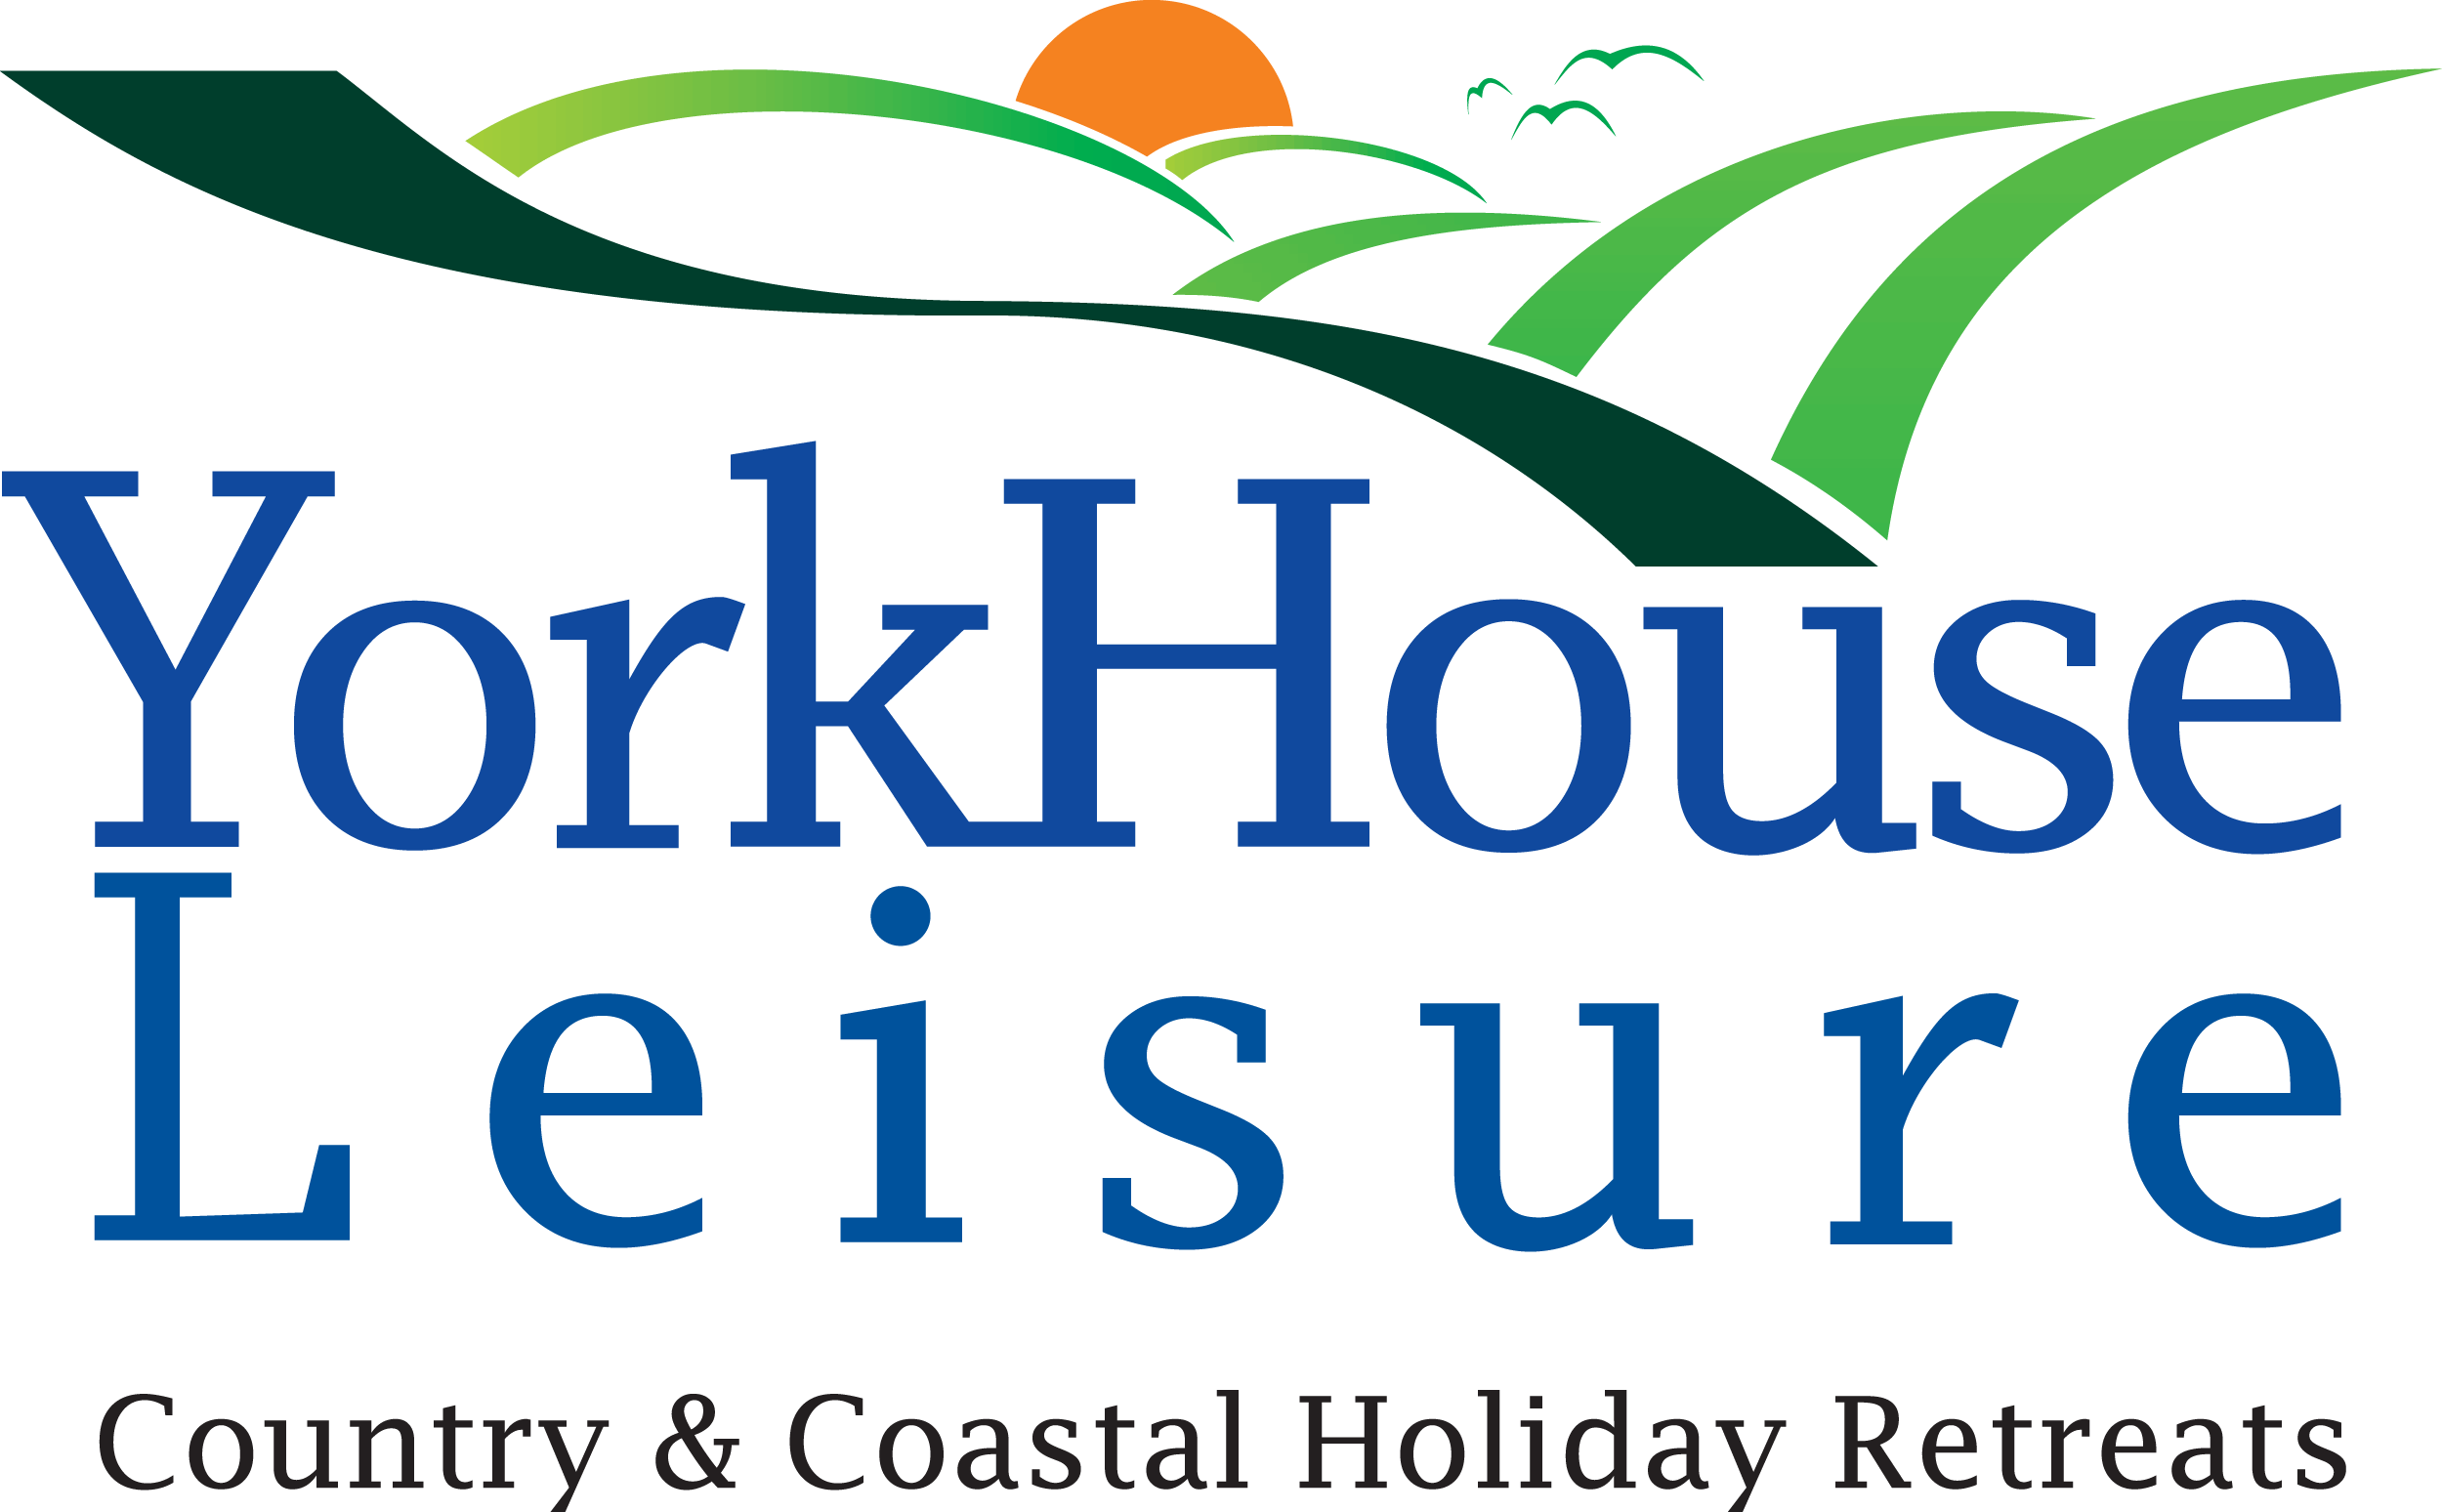 Holiday homes for sale in Yorkshire